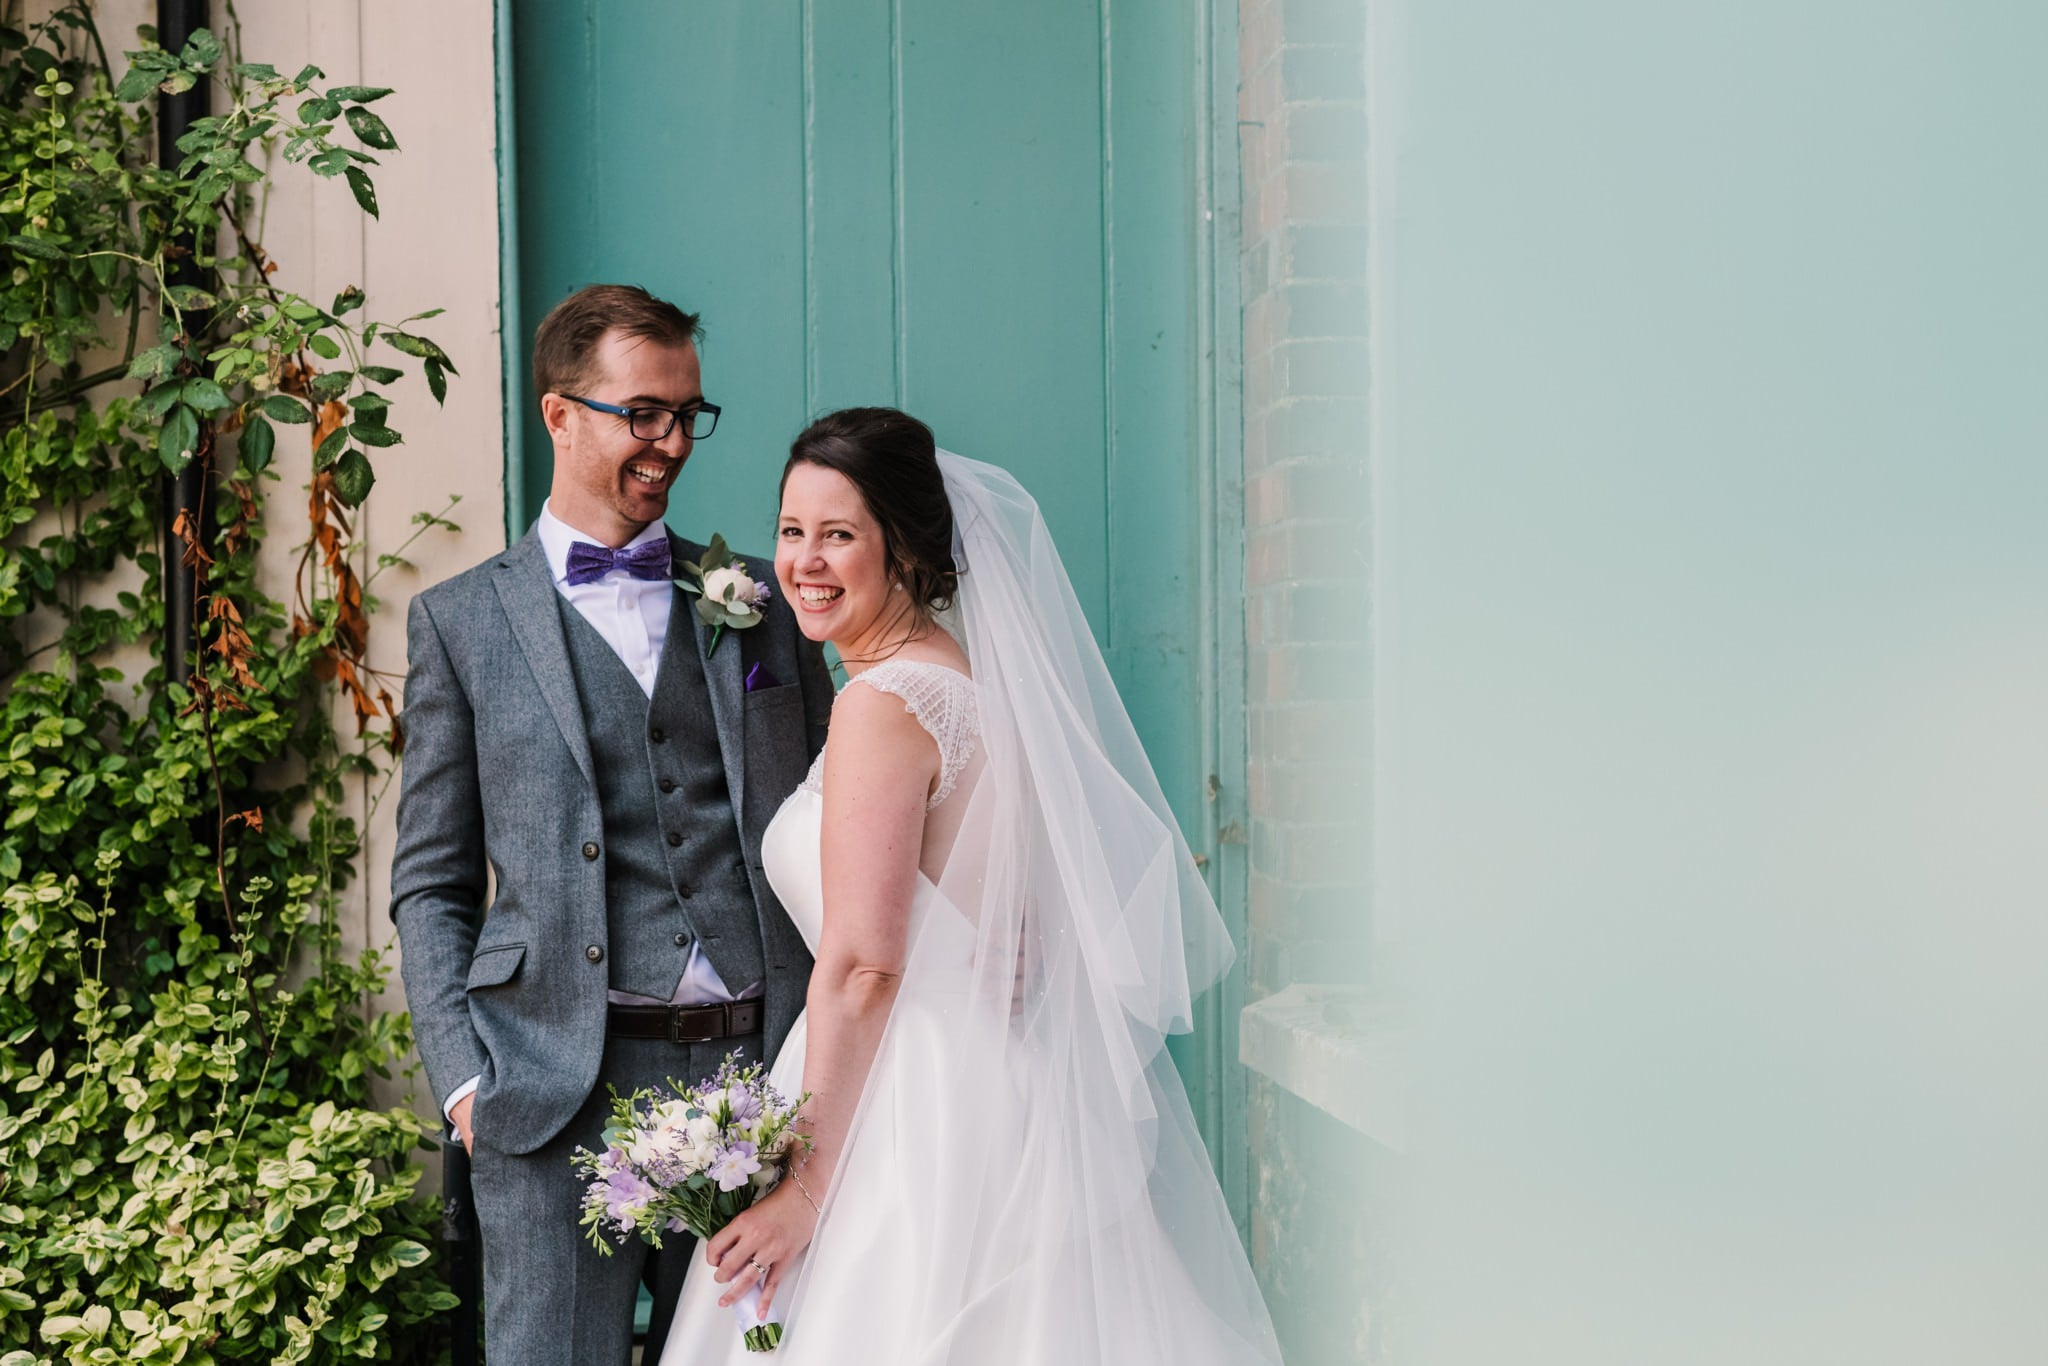 Colourful Dorset wedding photography at Knighton House Wedding